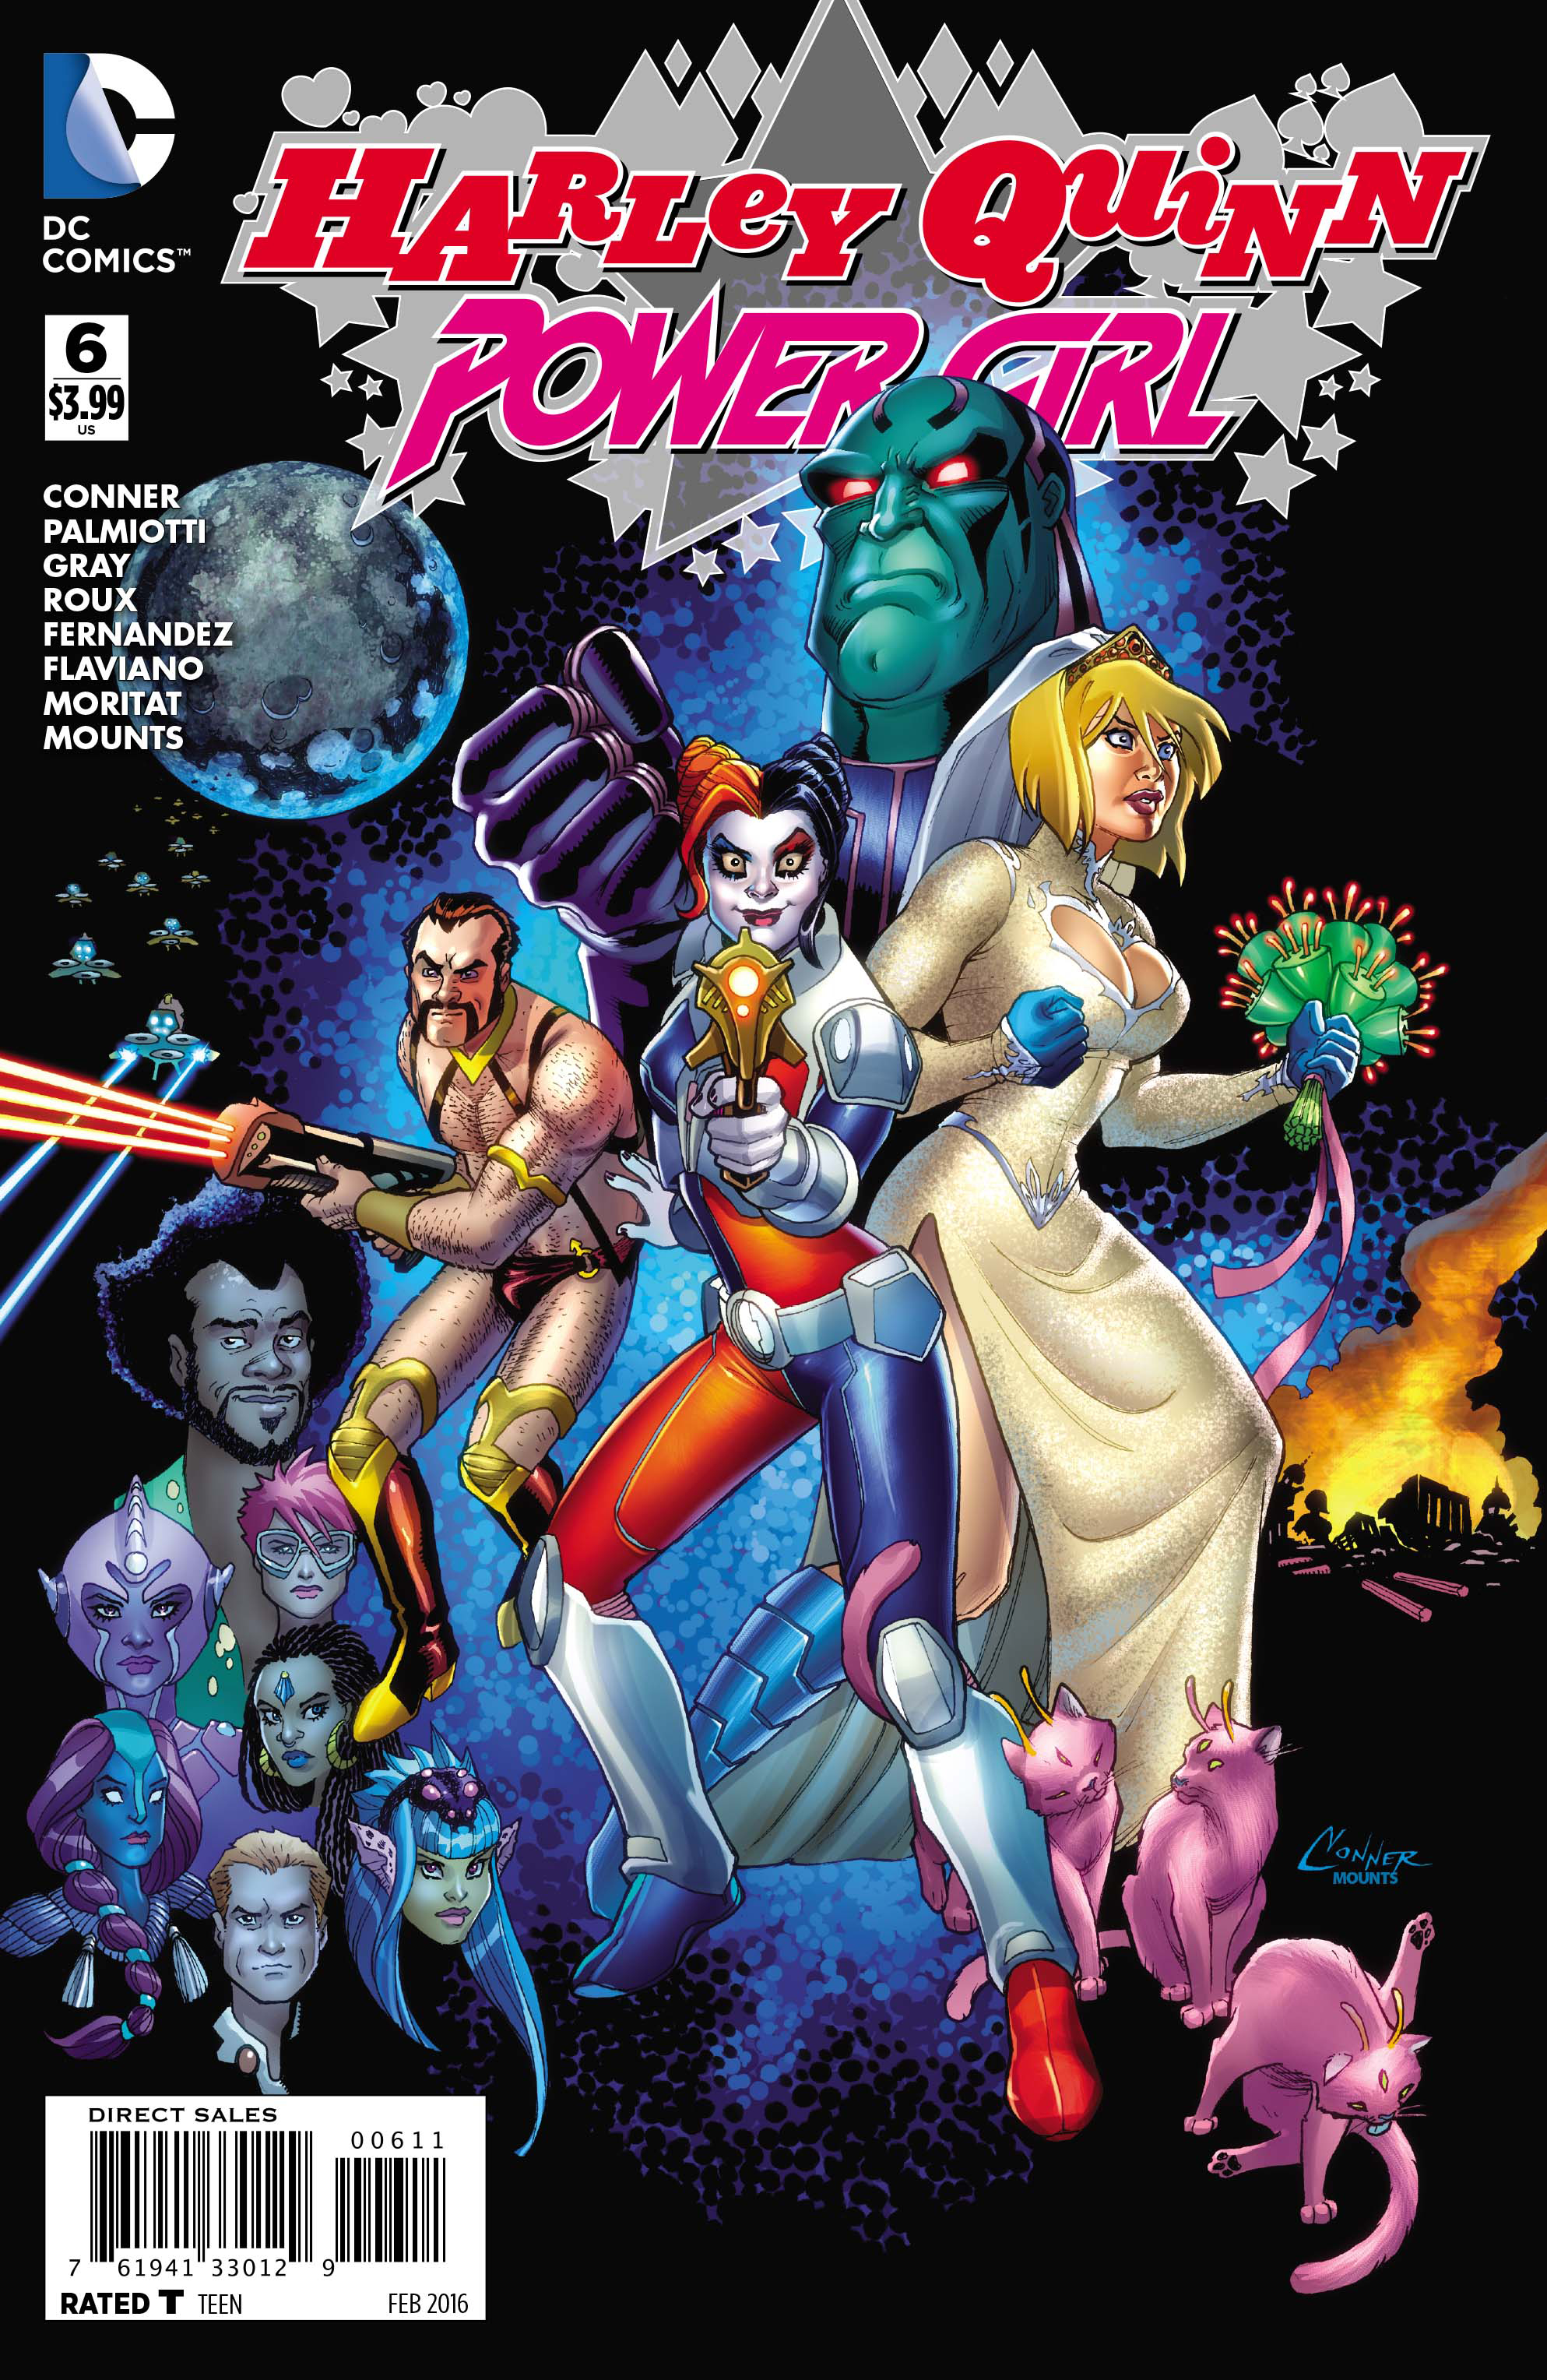 HARLEY QUINN & POWER GIRL #6